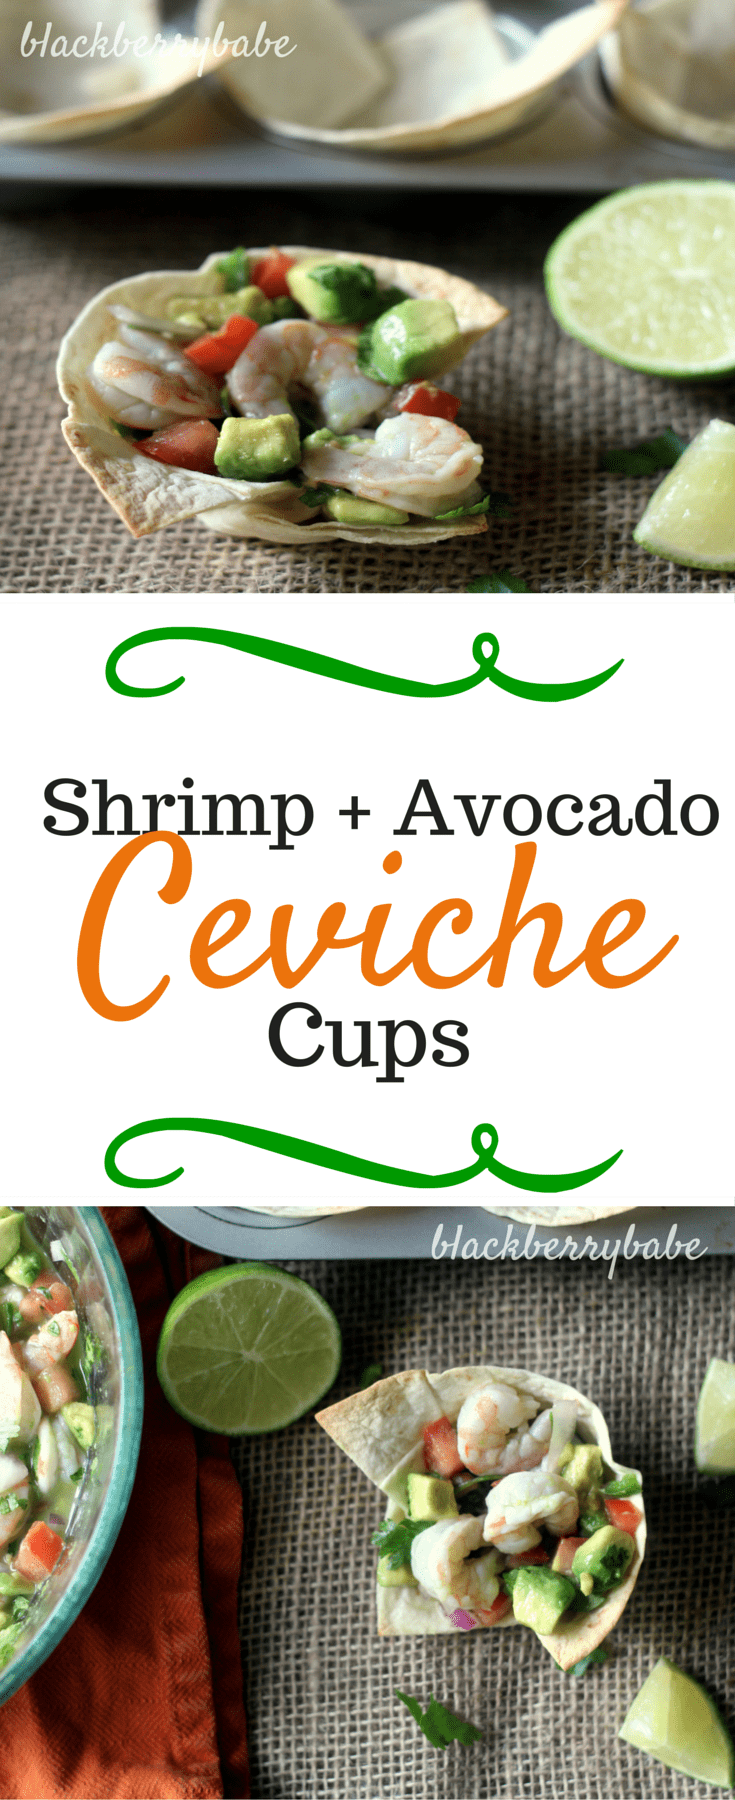 Shrimp and Avocado Ceviche Cups - blackberry babe (1)